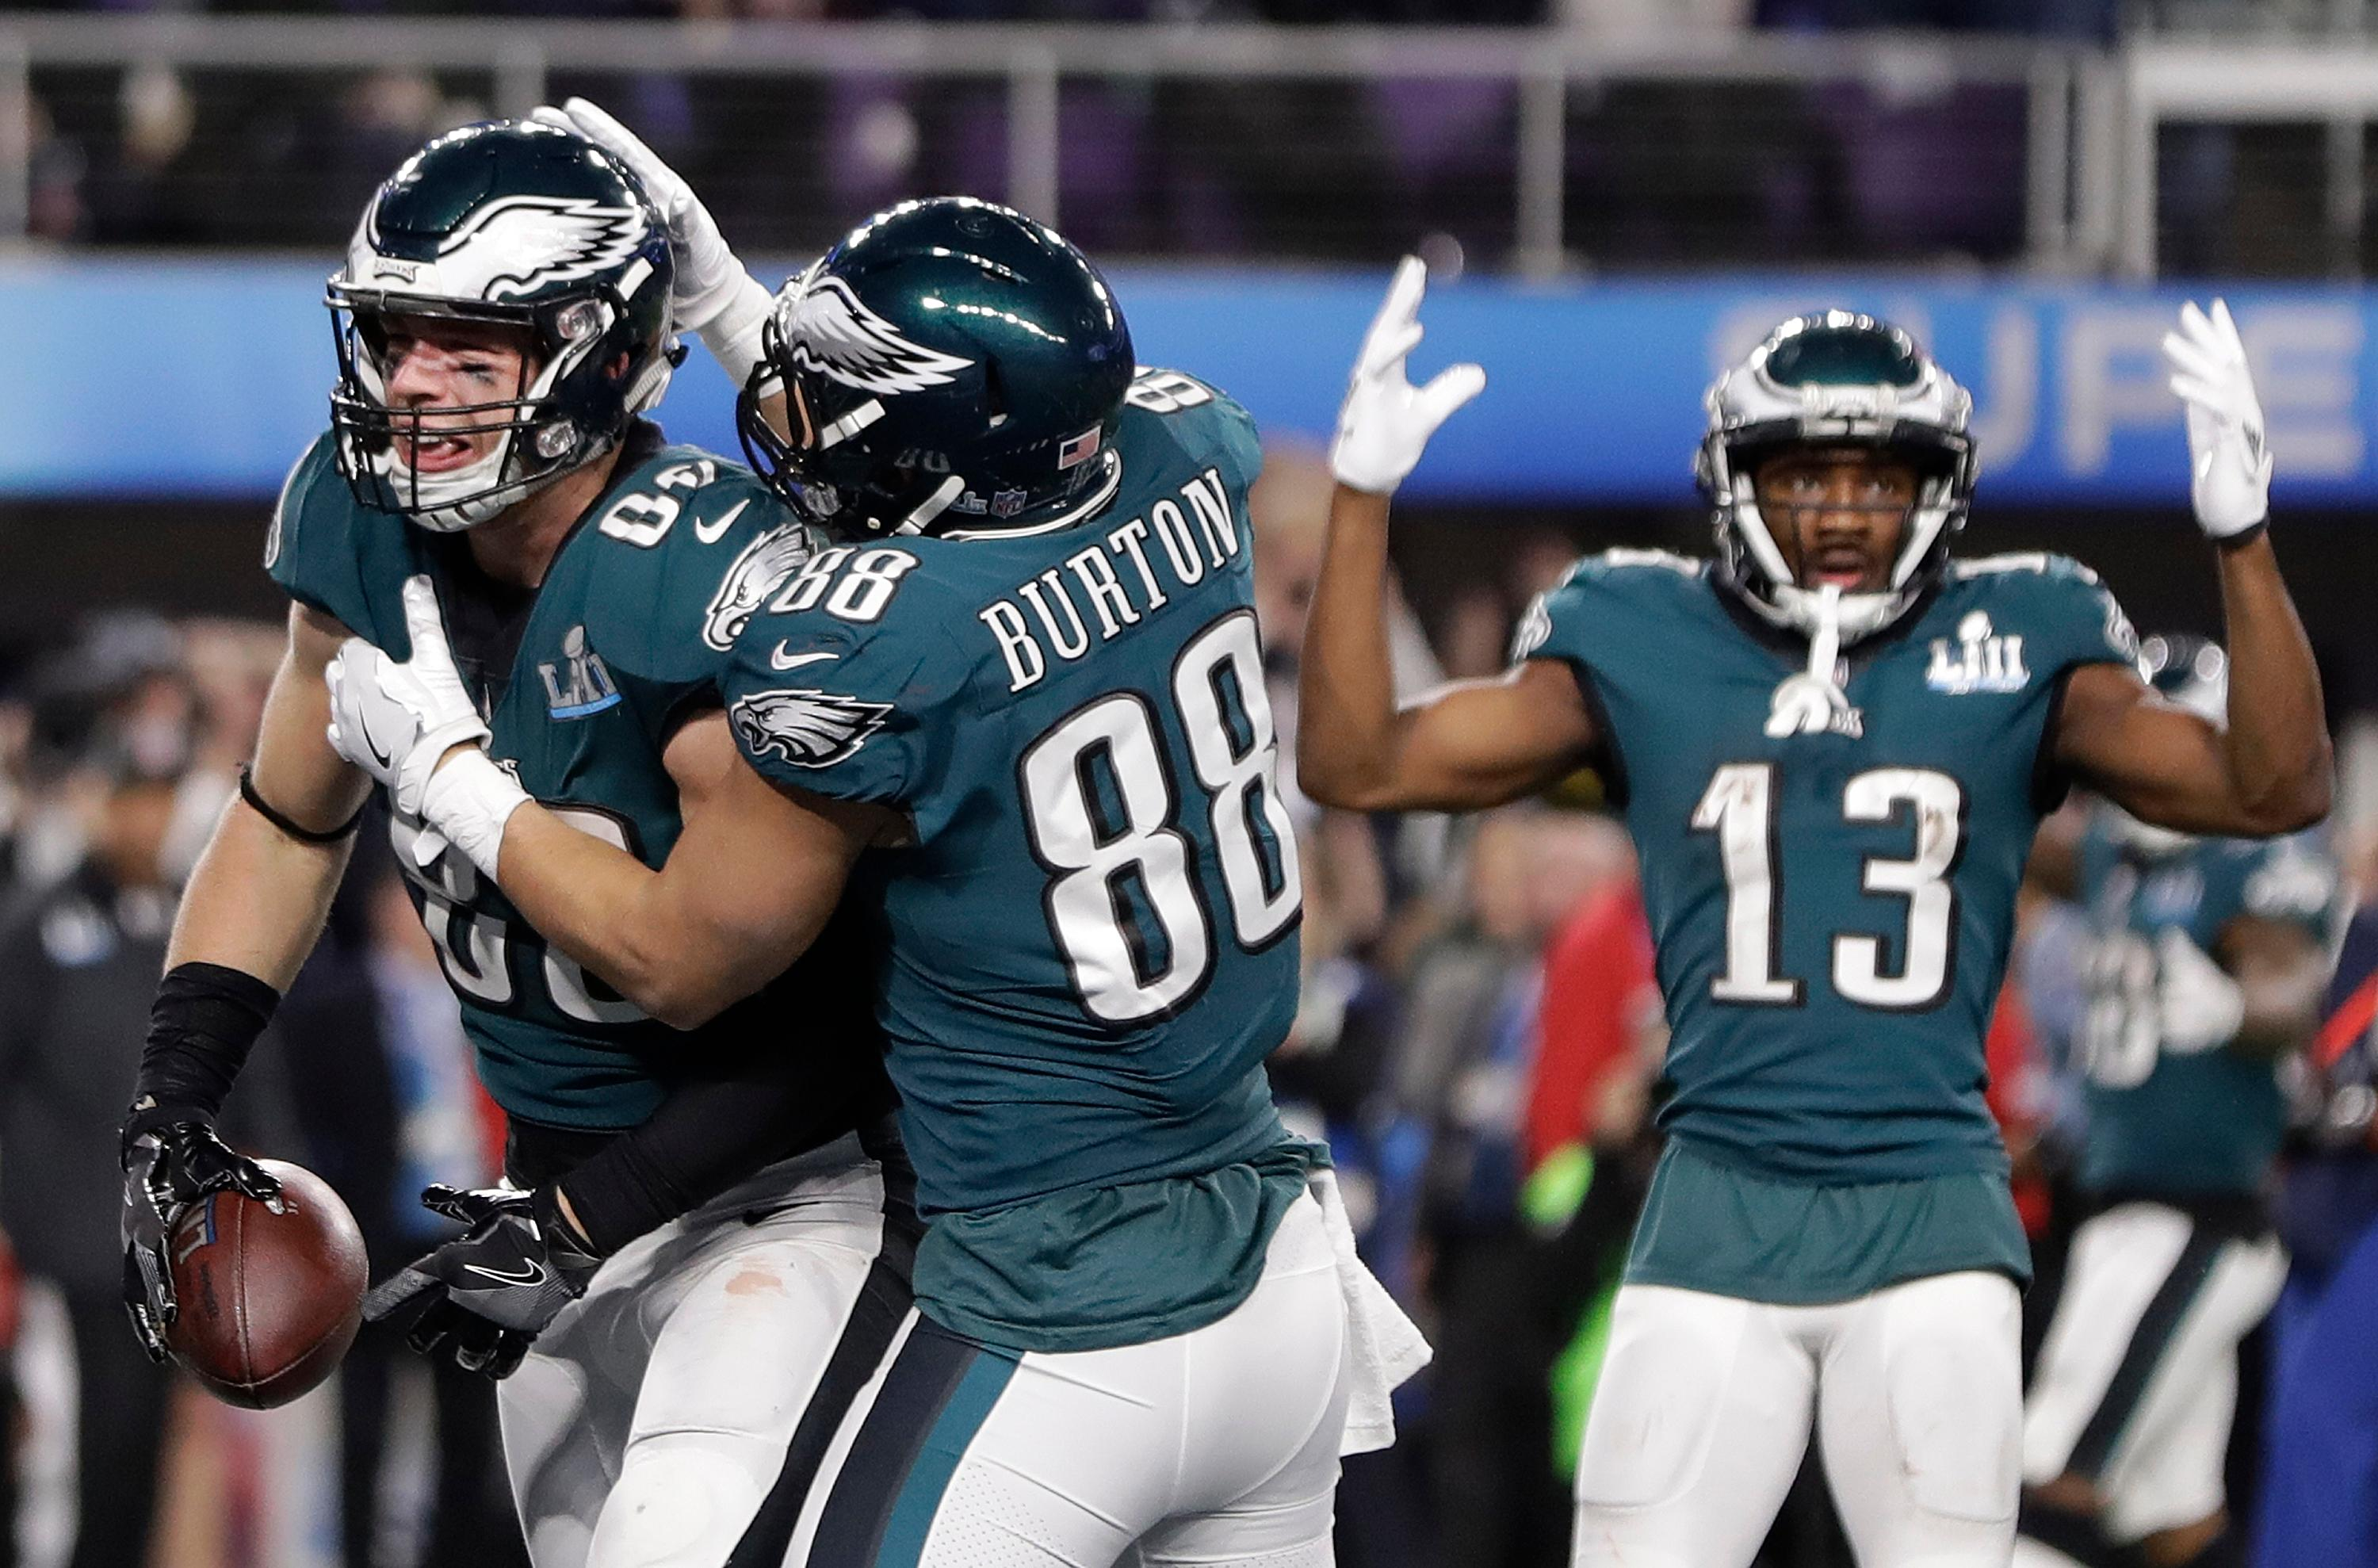 Philadelphia Eagles' Zach Ertz, left, celebrates his touchdown catch during the second half of the NFL Super Bowl 52 football game against the New England Patriots Sunday, Feb. 4, 2018, in Minneapolis. (AP Photo/Mark Humphrey)